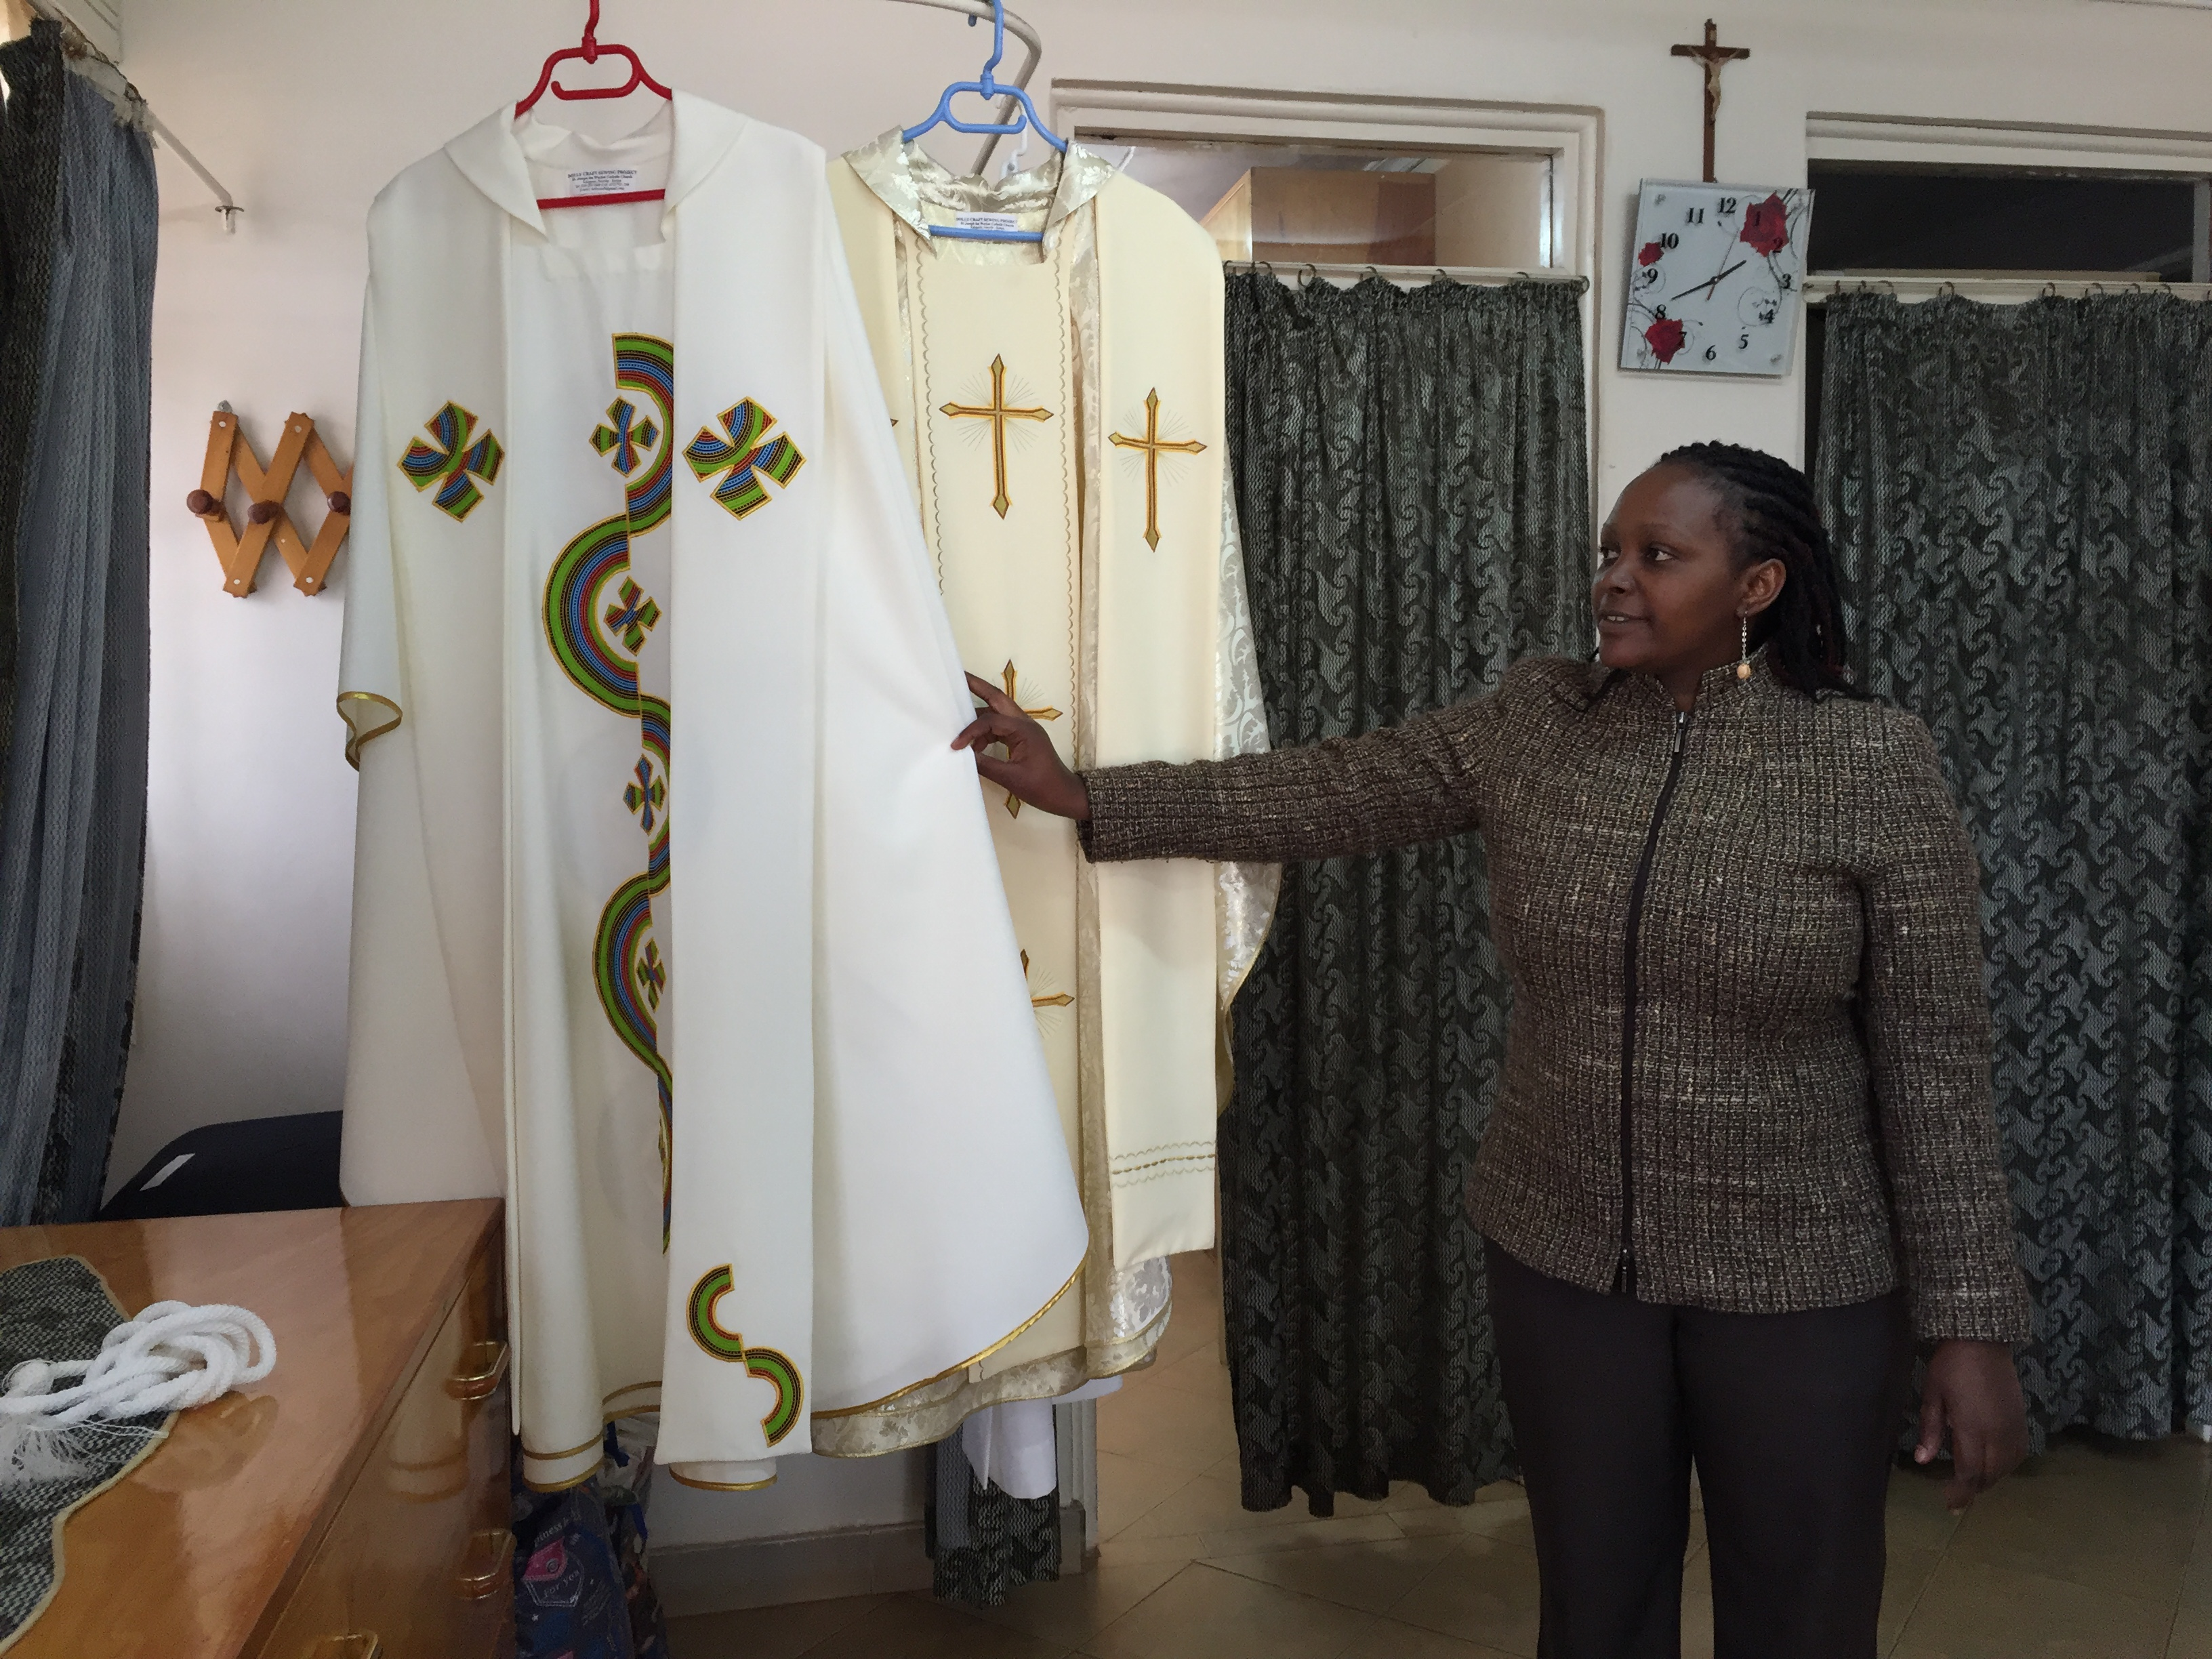 Sarah Ndungu, secretary and accountant for the Dolly Craft Sewing Project in Kangemi slum, Nairobi, shows the two chasubles her group designed and constructed for Pope Francis during his visit to Kenya later this month, Nov. 12, 2015. (Photo: J. Crai...